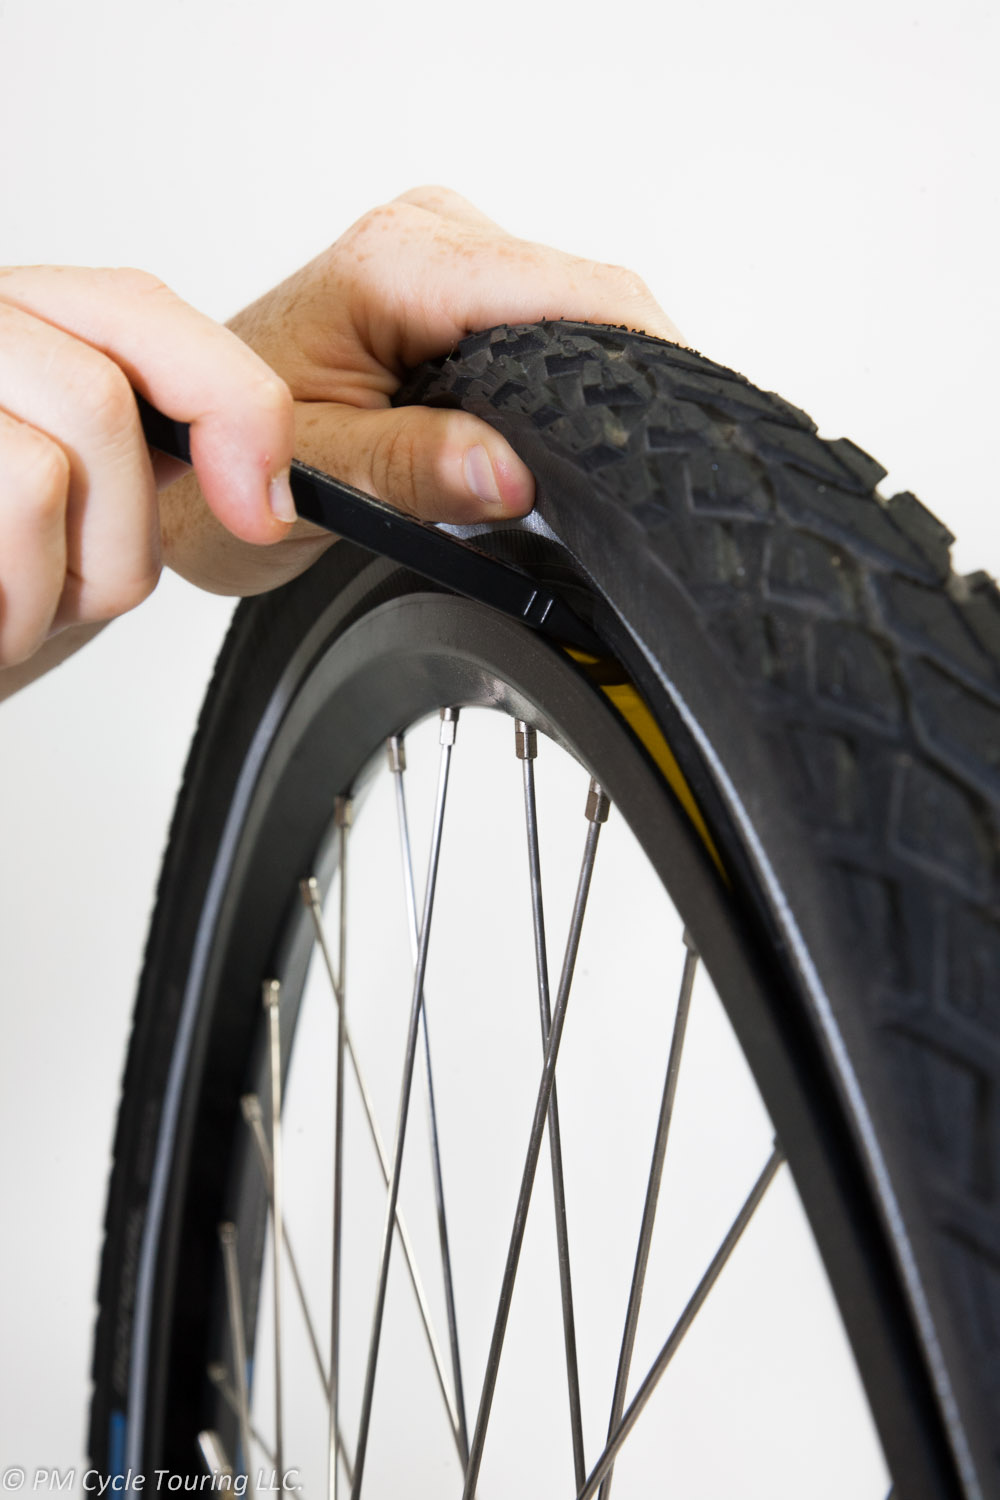 Prying the tire over the rim by inserting a tire lever.